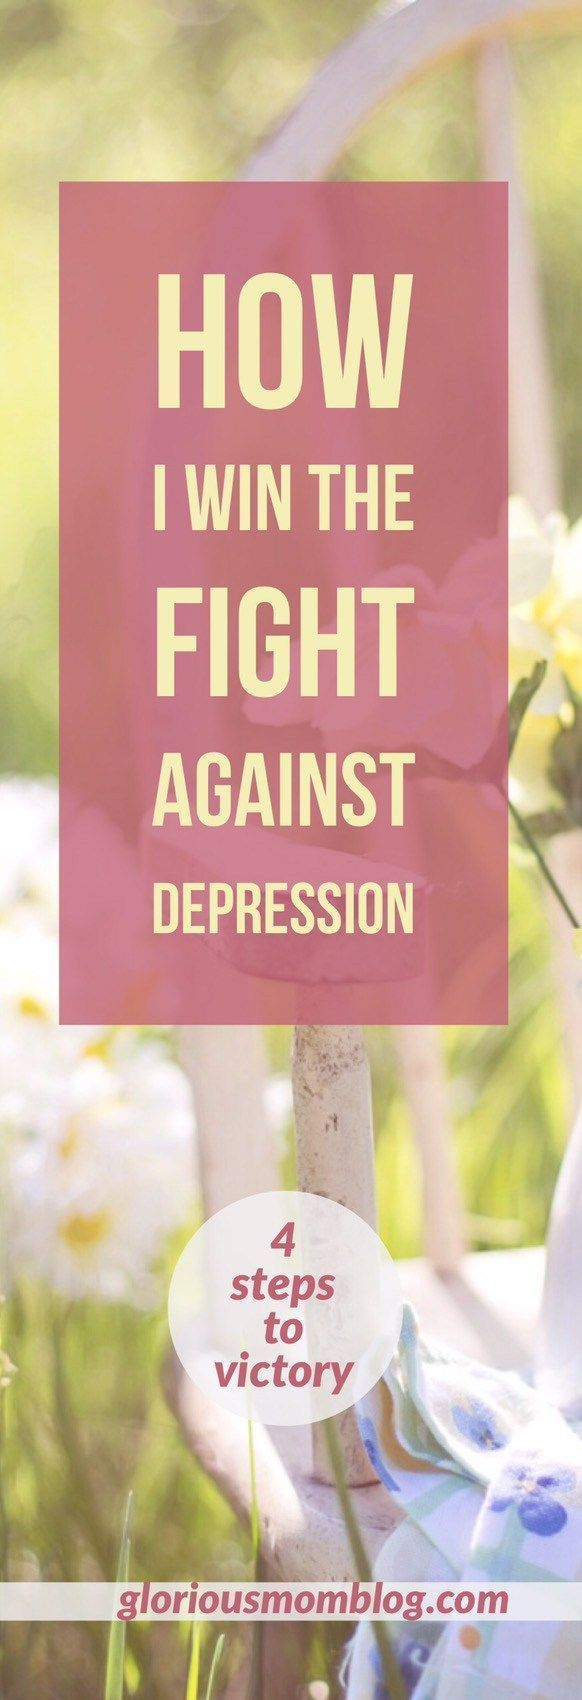 How I win the fight against depression: four steps I take to beat the monster back. Find out how I do it at http://gloriousmomblog.com.